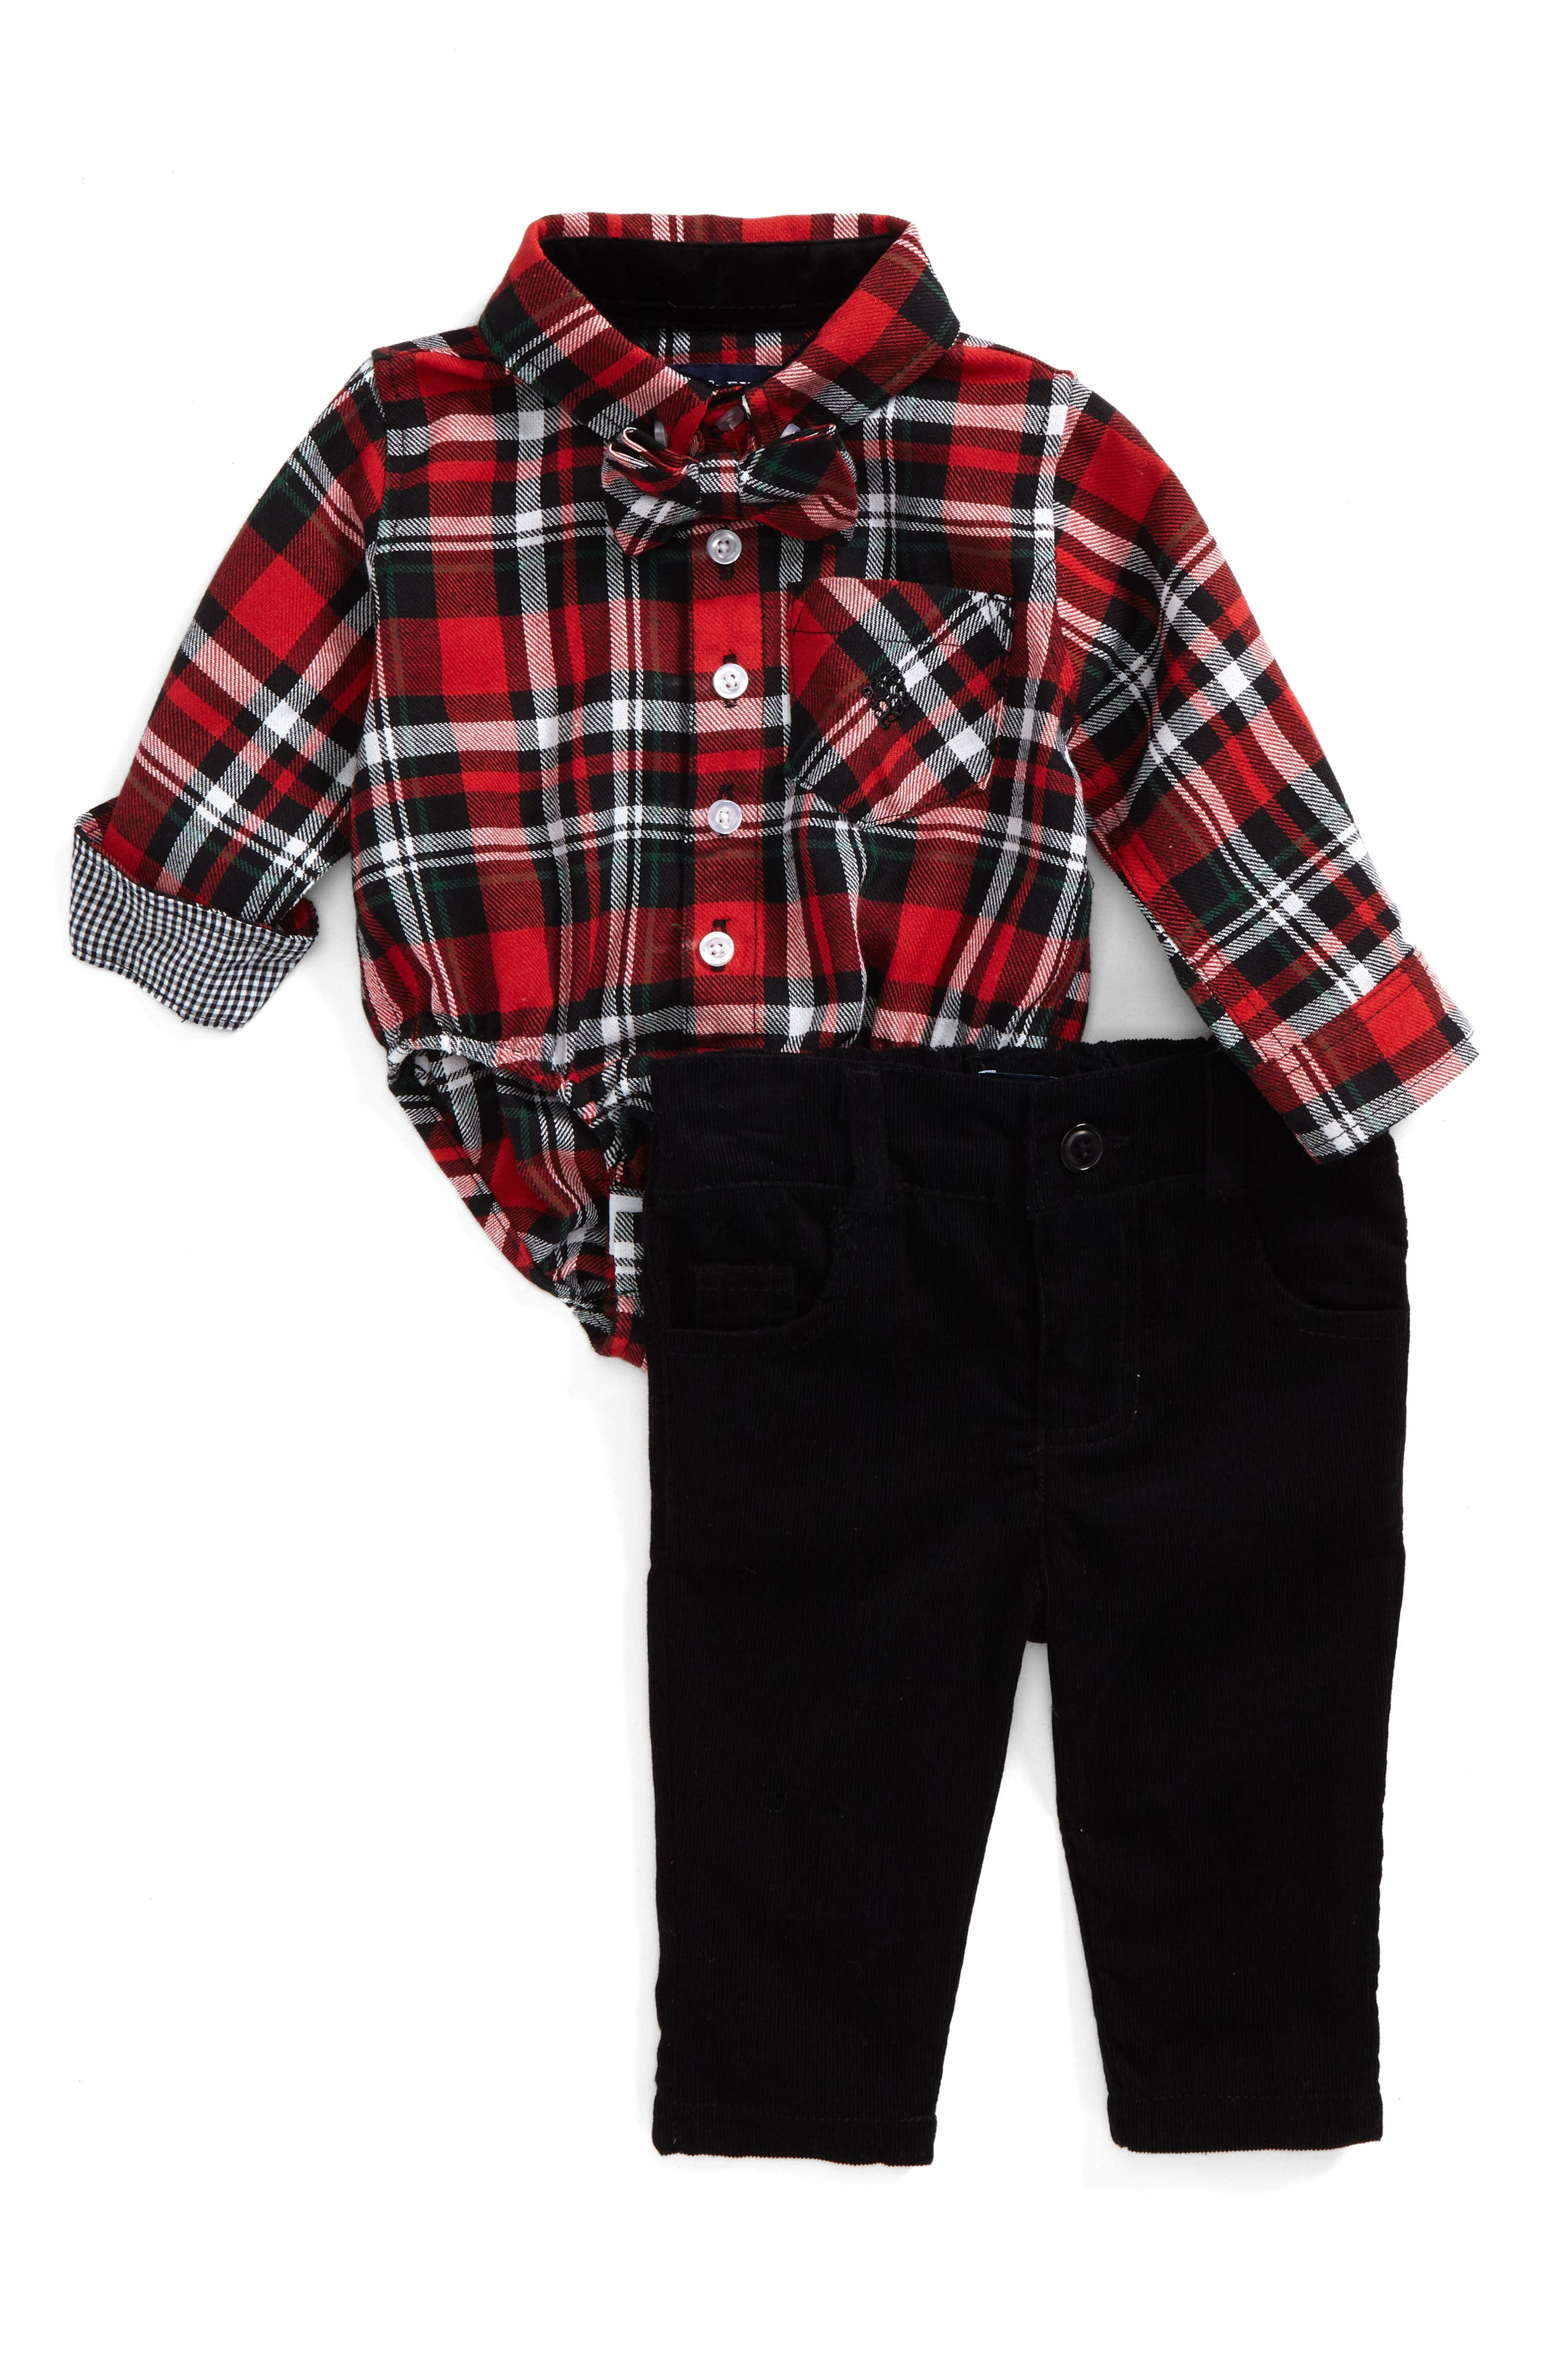 Main Image - Andy & Evan Shirtzie Holiday Plaid Bodysuit, Corduroy Pants & Bow Tie Set (Baby Boys)